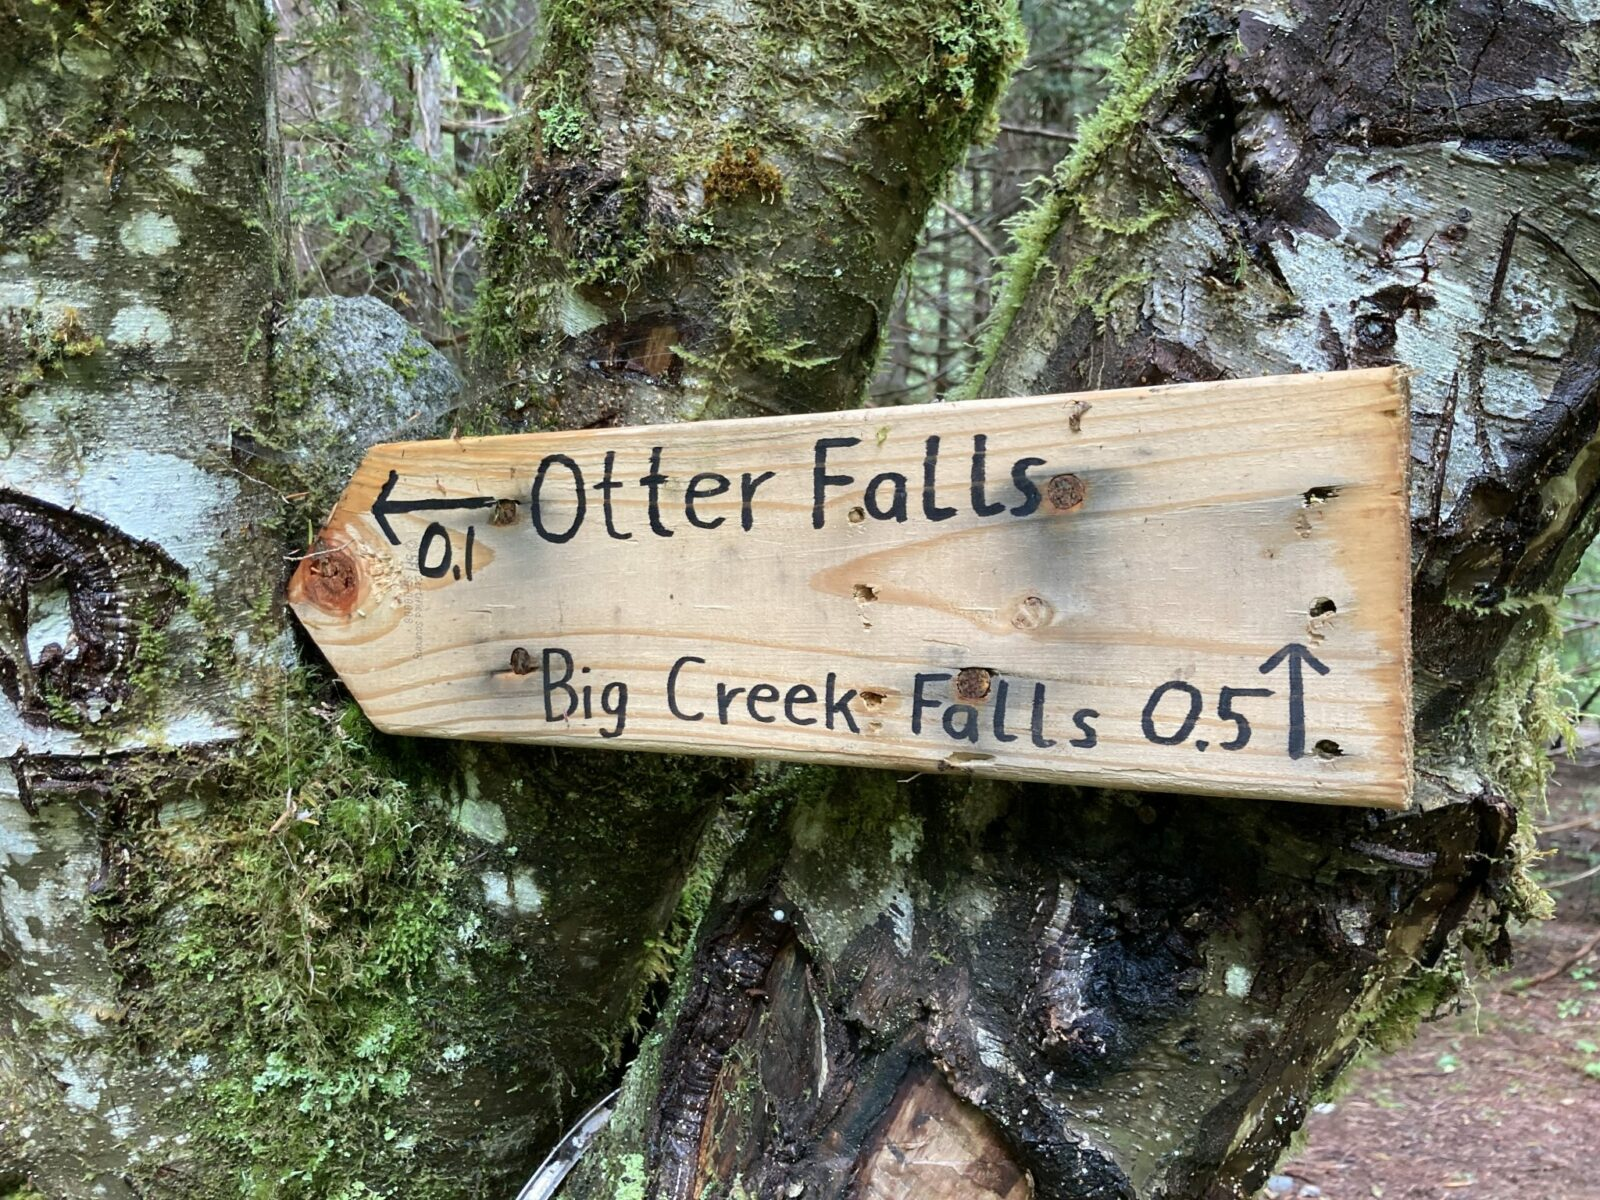 A wooden trail sign with an arrow left for Otter Falls and right for Big Creek Falls